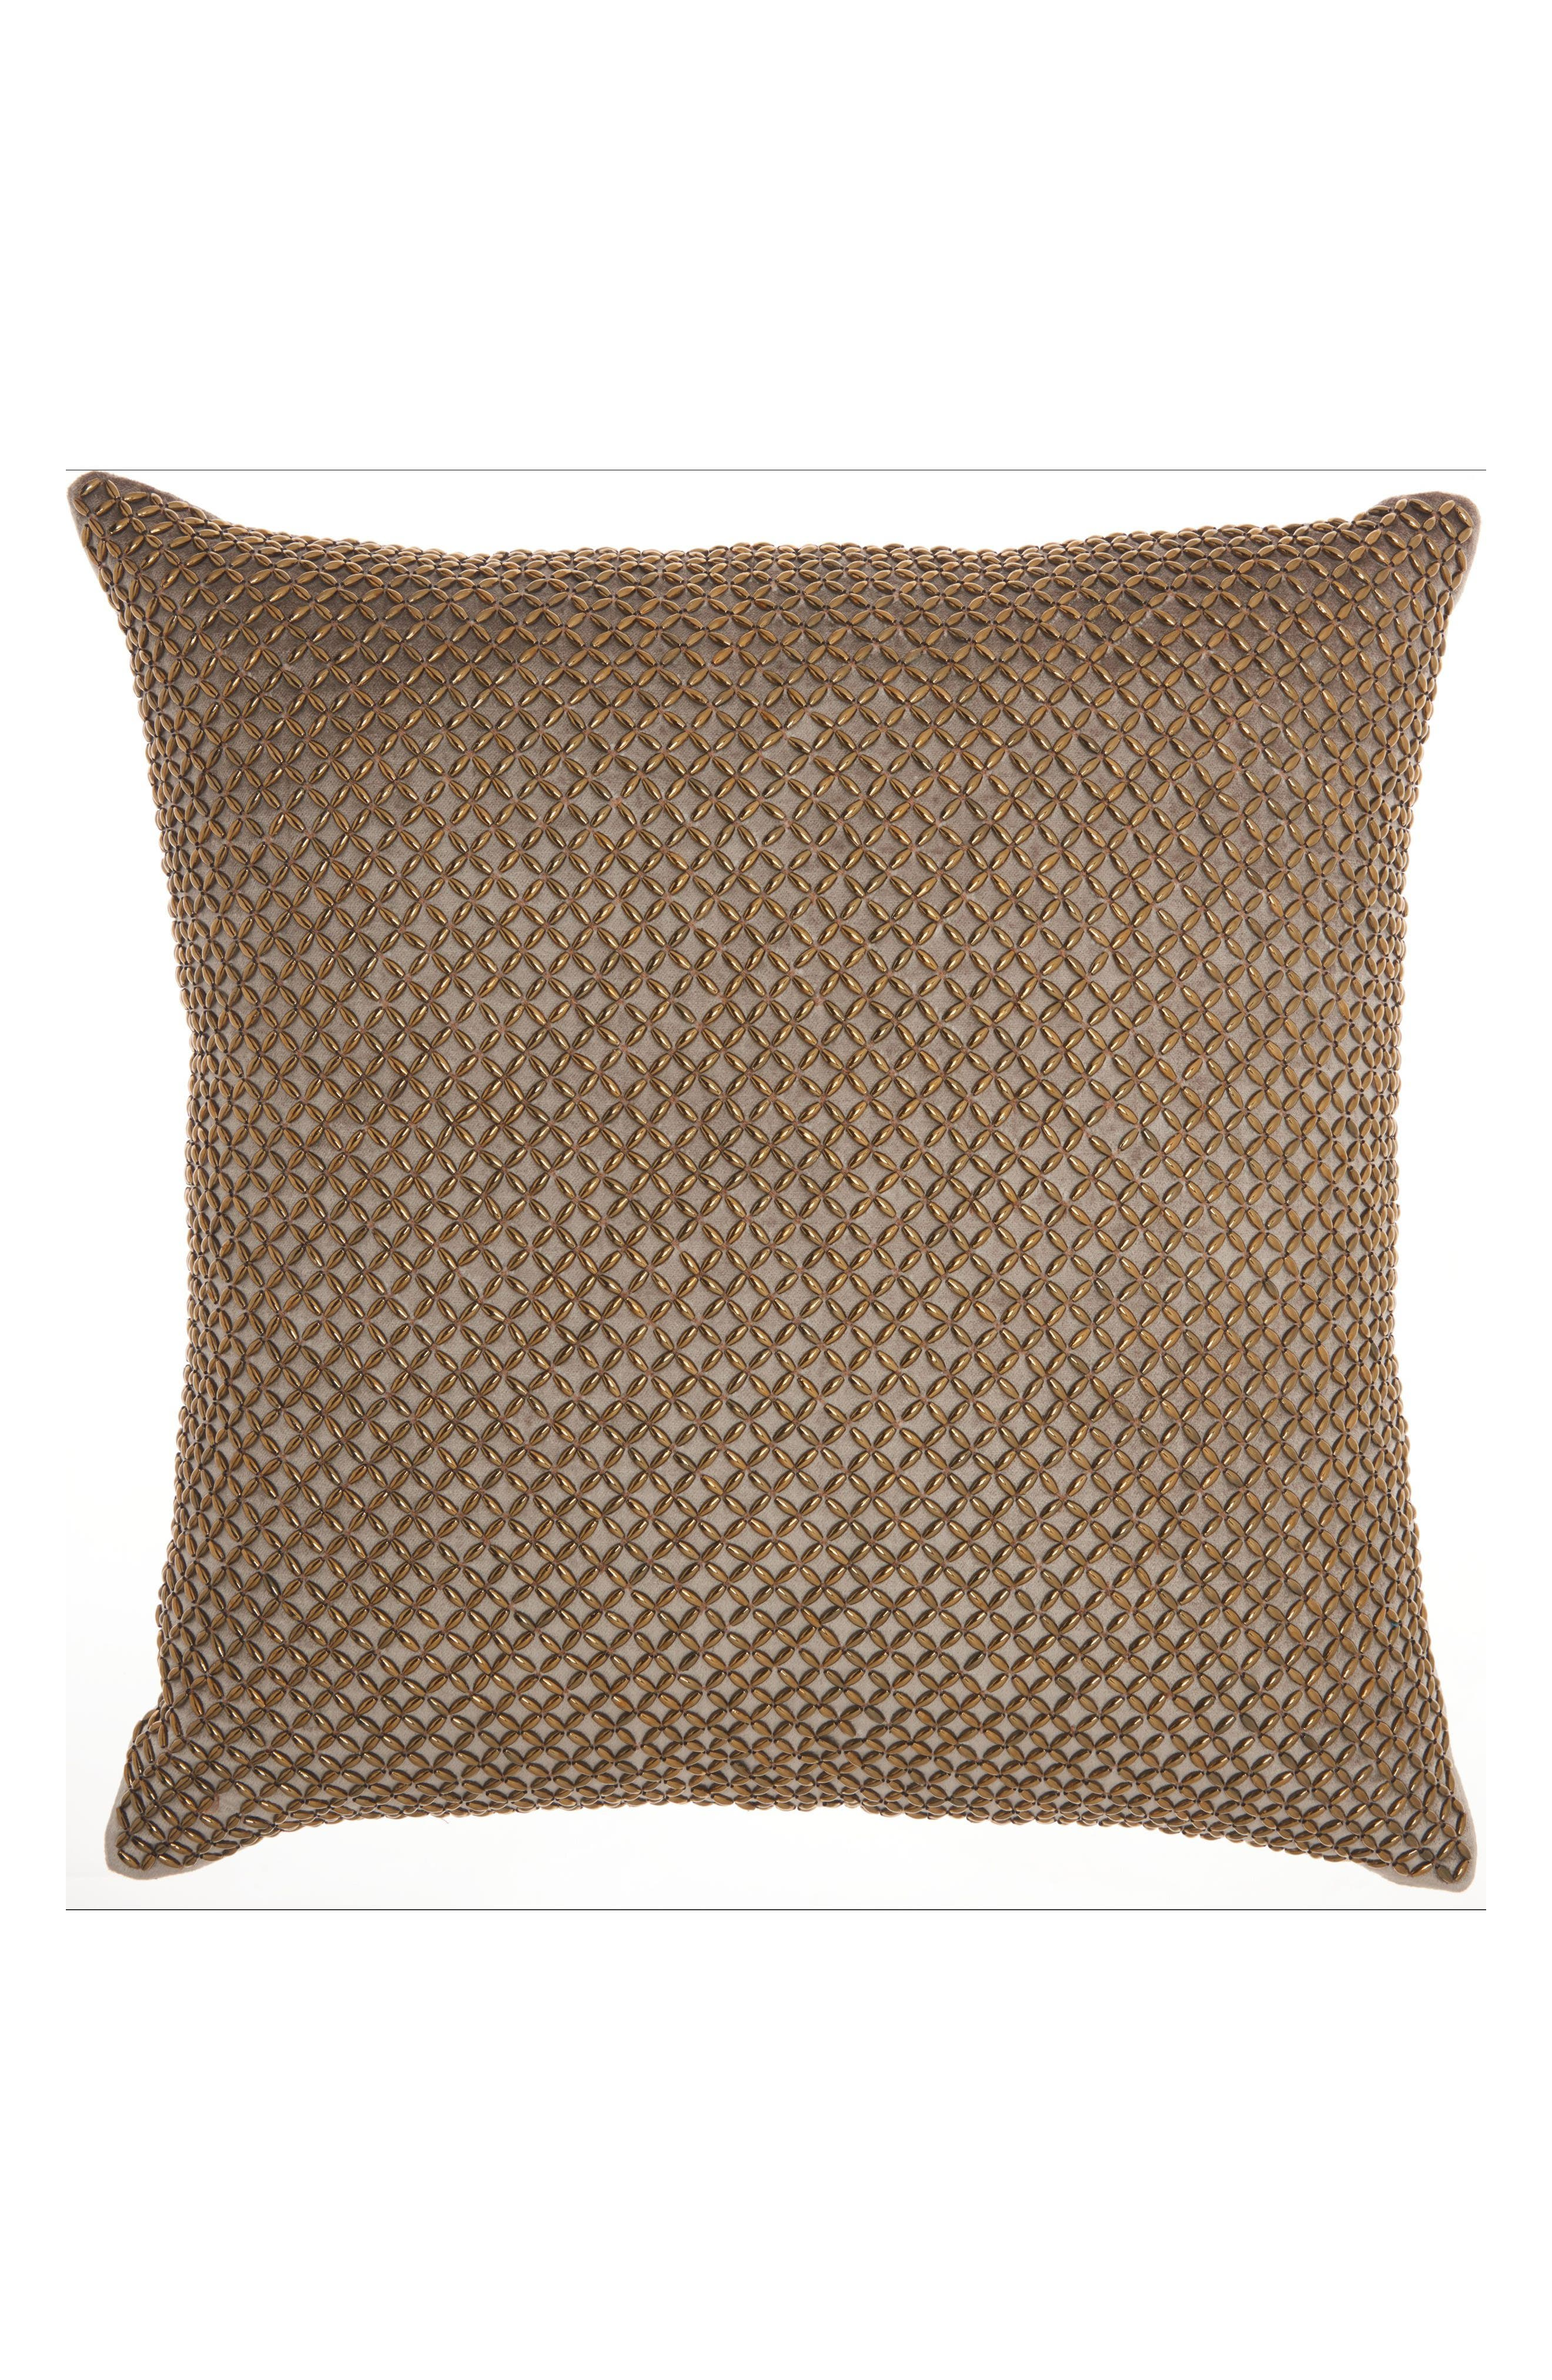 Cobble Jewel Accent Pillow,                             Main thumbnail 1, color,                             Taupe